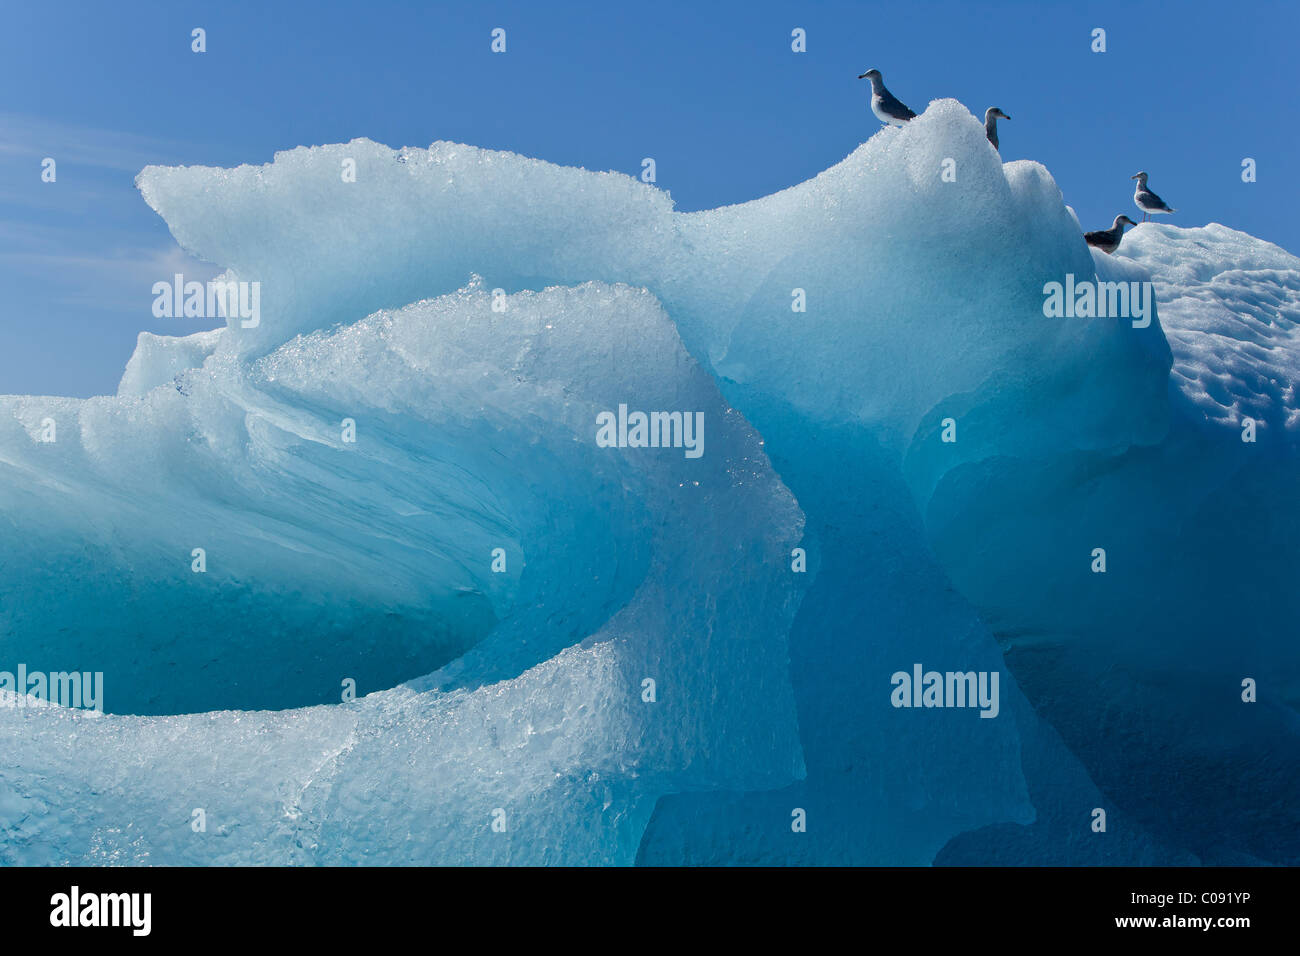 Close up of an iceberg in Stephens Passage with gulls perched on top, Inside Passage, Southeast Alaska, Summer - Stock Image